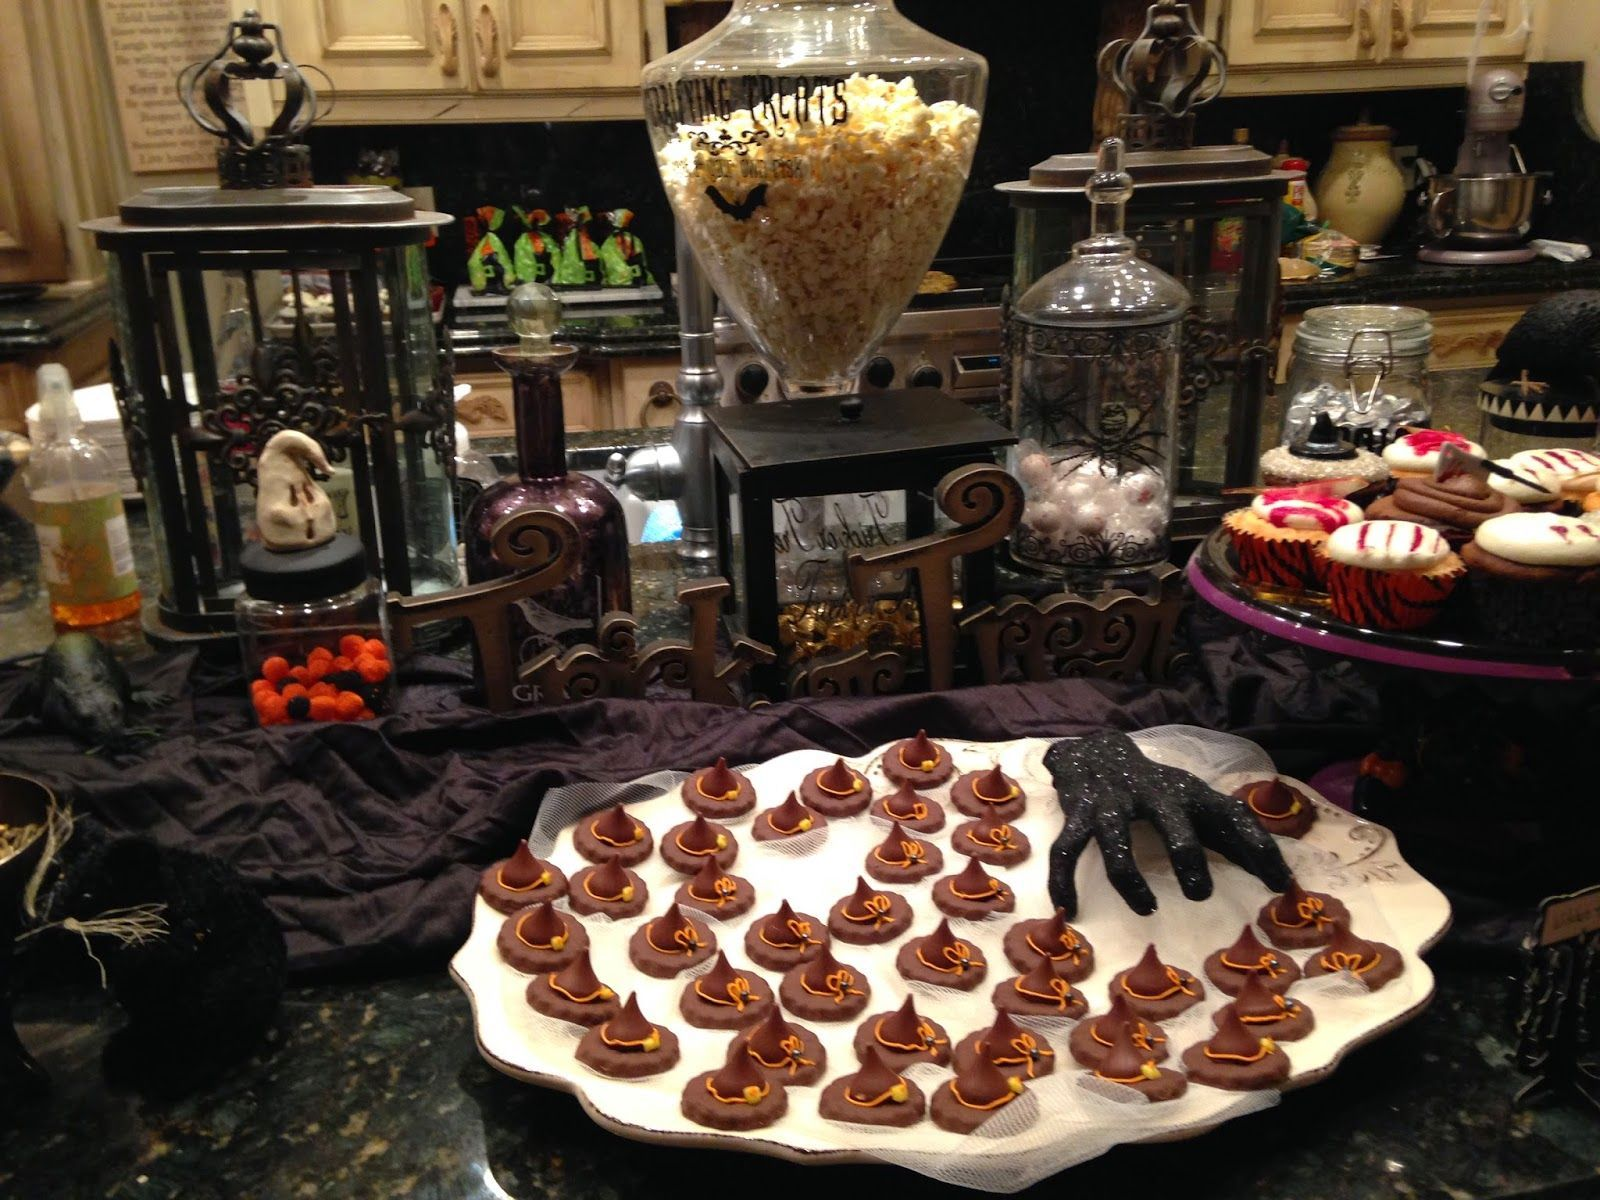 Purple Chocolat Home: Zombie Apocalypse Tablescape and Party #zombieapocalypseparty Purple Chocolat Home: Zombie Apocalypse Tablescape and Party #zombieapocalypseparty